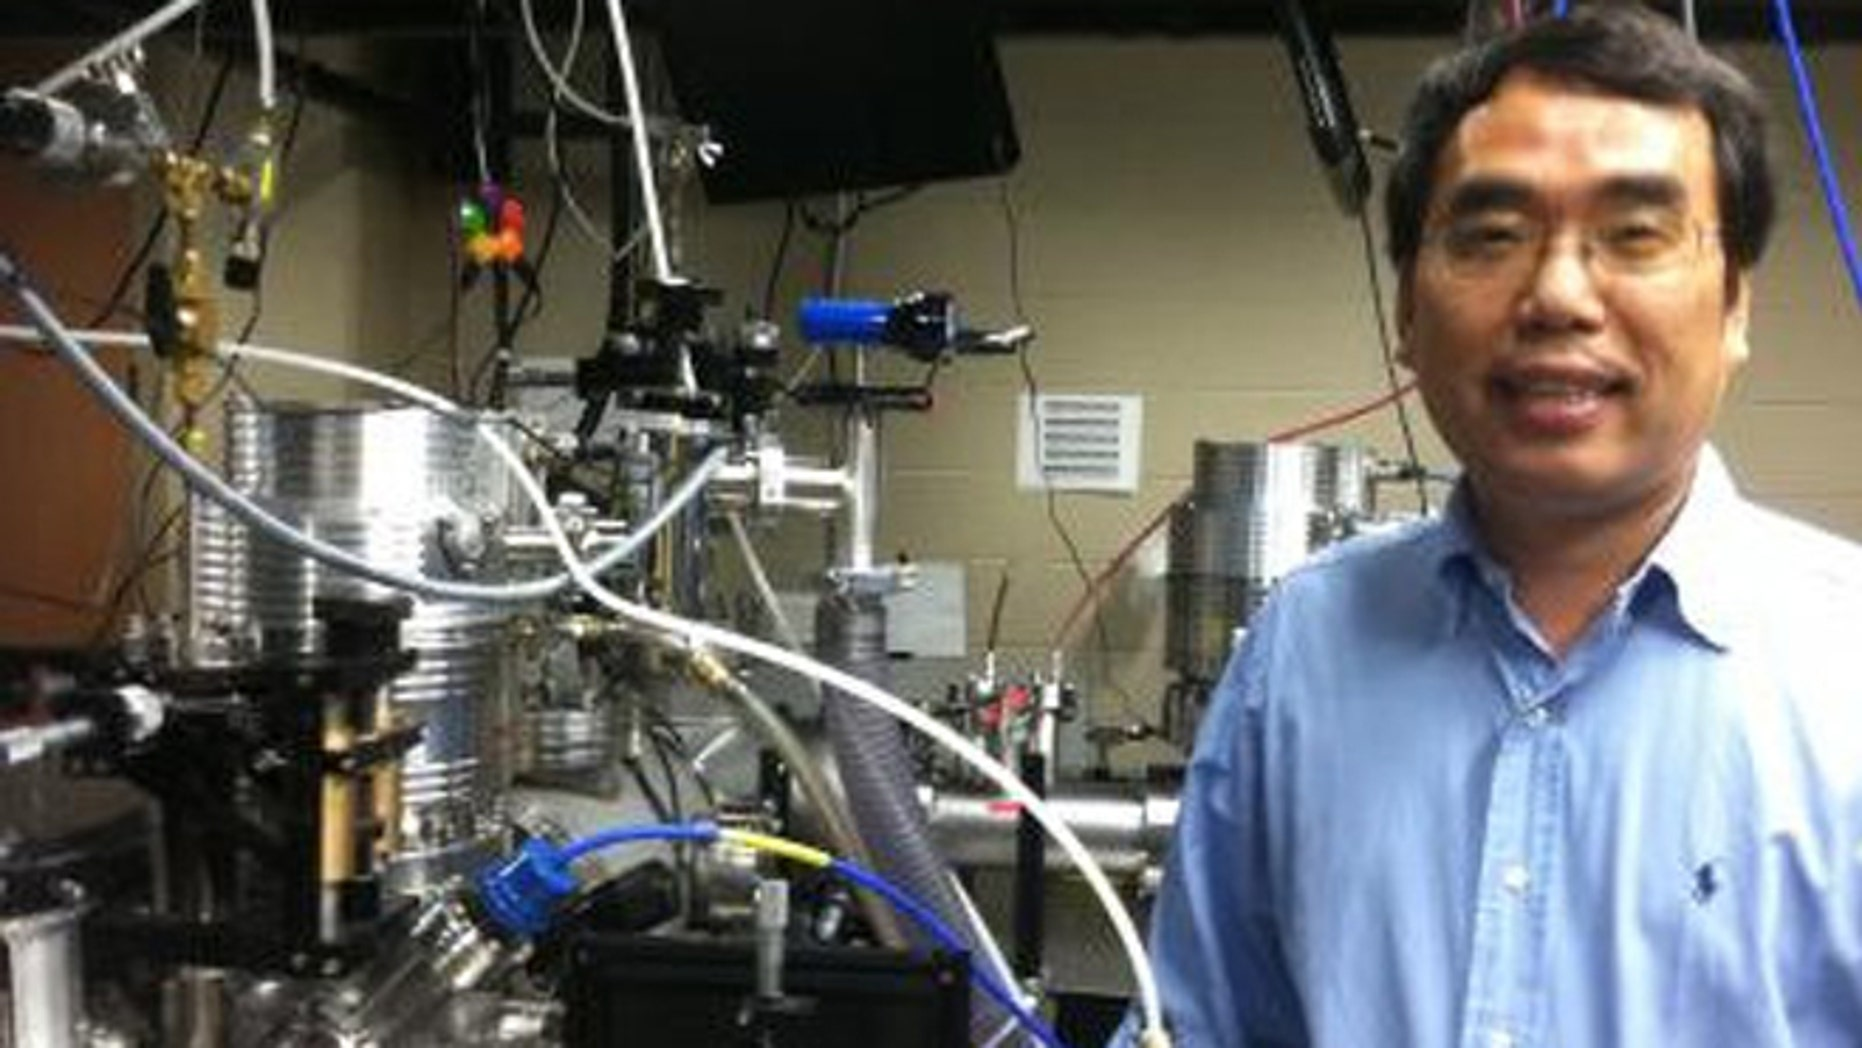 A photo of Dr. Chang, who accomplished his work at the Florida Atto Science &Technology (FAST) lab.